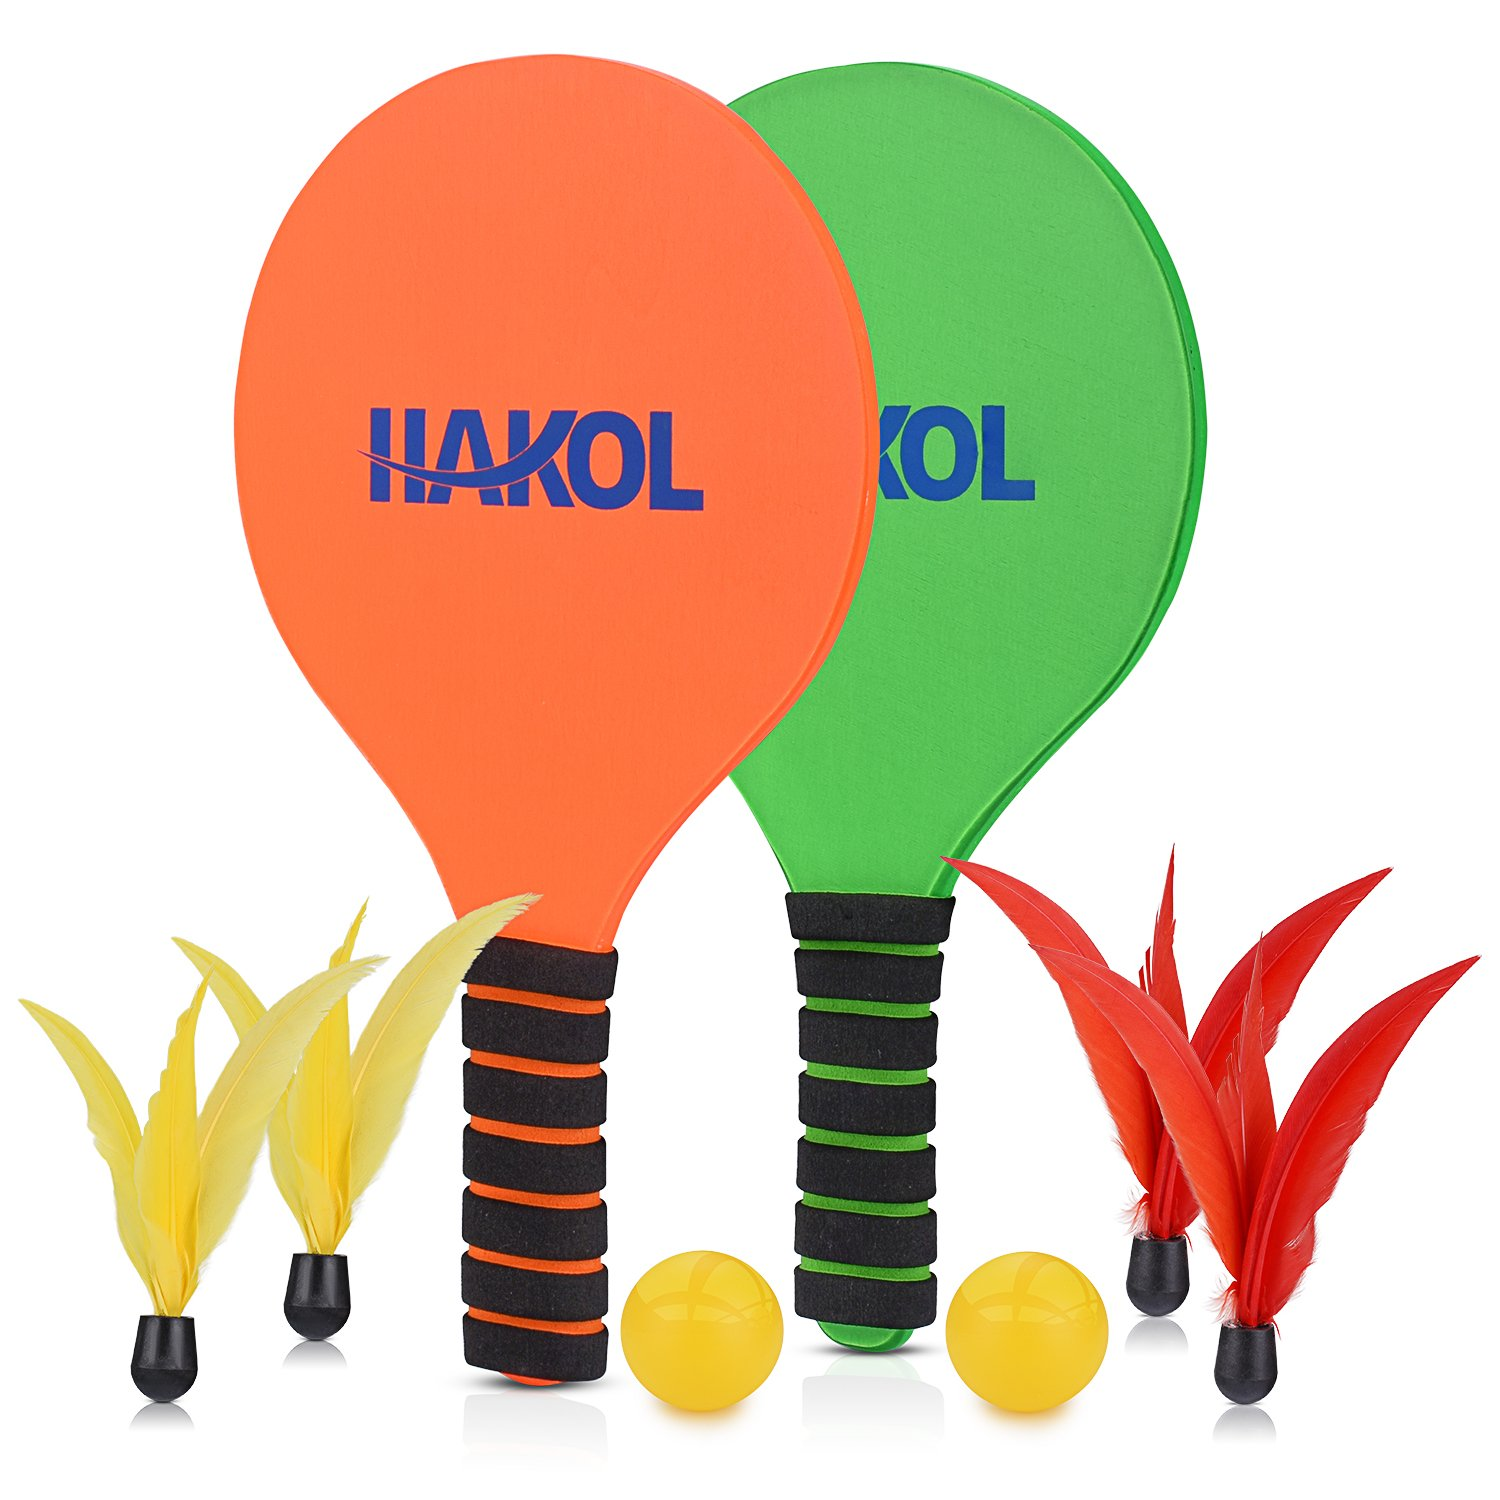 HAKOL Premium Paddle Ball 2 Player Bundle - 2 Durable Paddles, 2 Balls, 2 Red & 2 Yellow Birdie Feather Balls - Great For Indoors, Outdoors, Beach & Pool Fun & Sports - Suitable For Kids & Adults